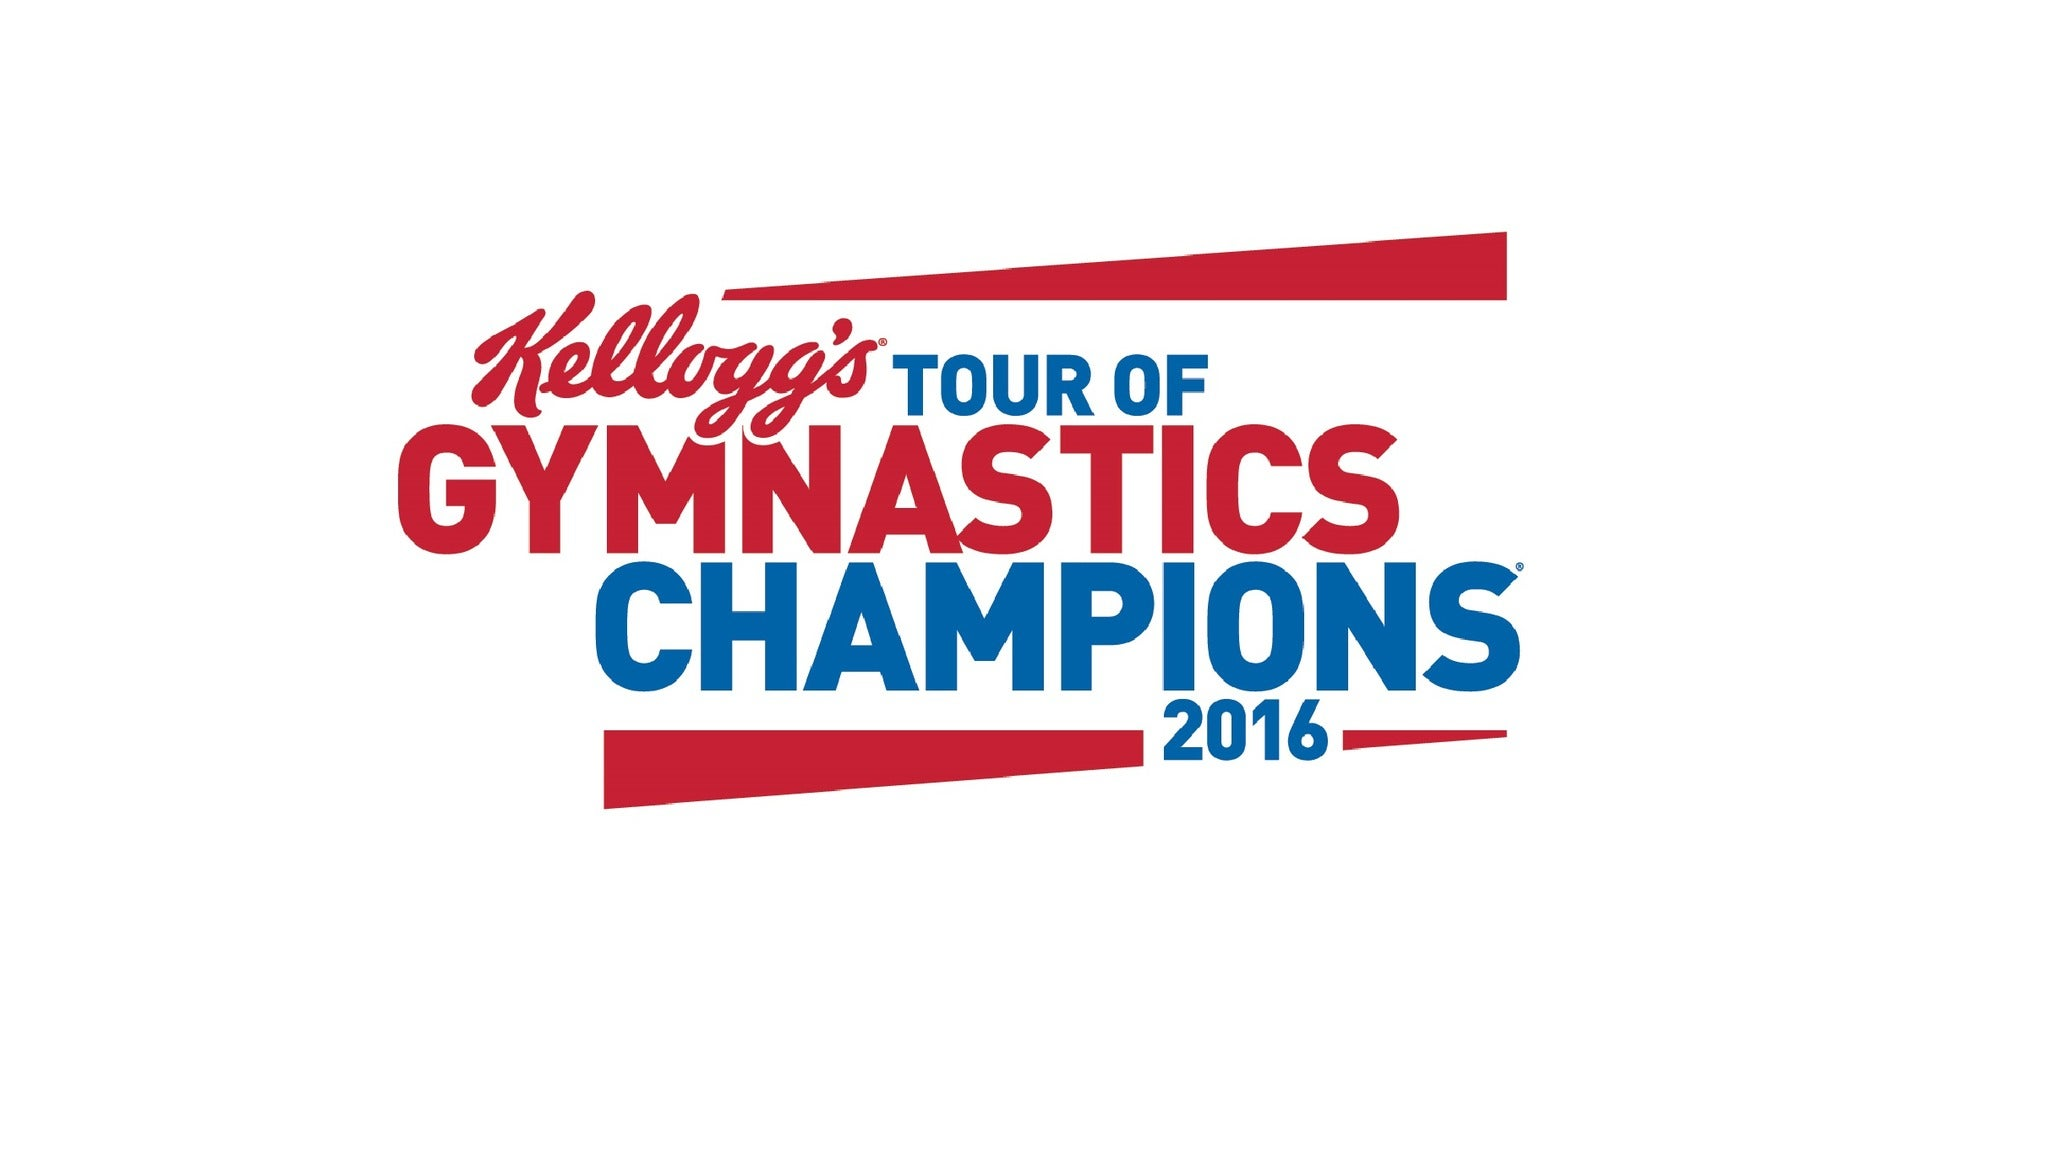 Kellogg's Tour Of Gymnastics Champions at Verizon Arena